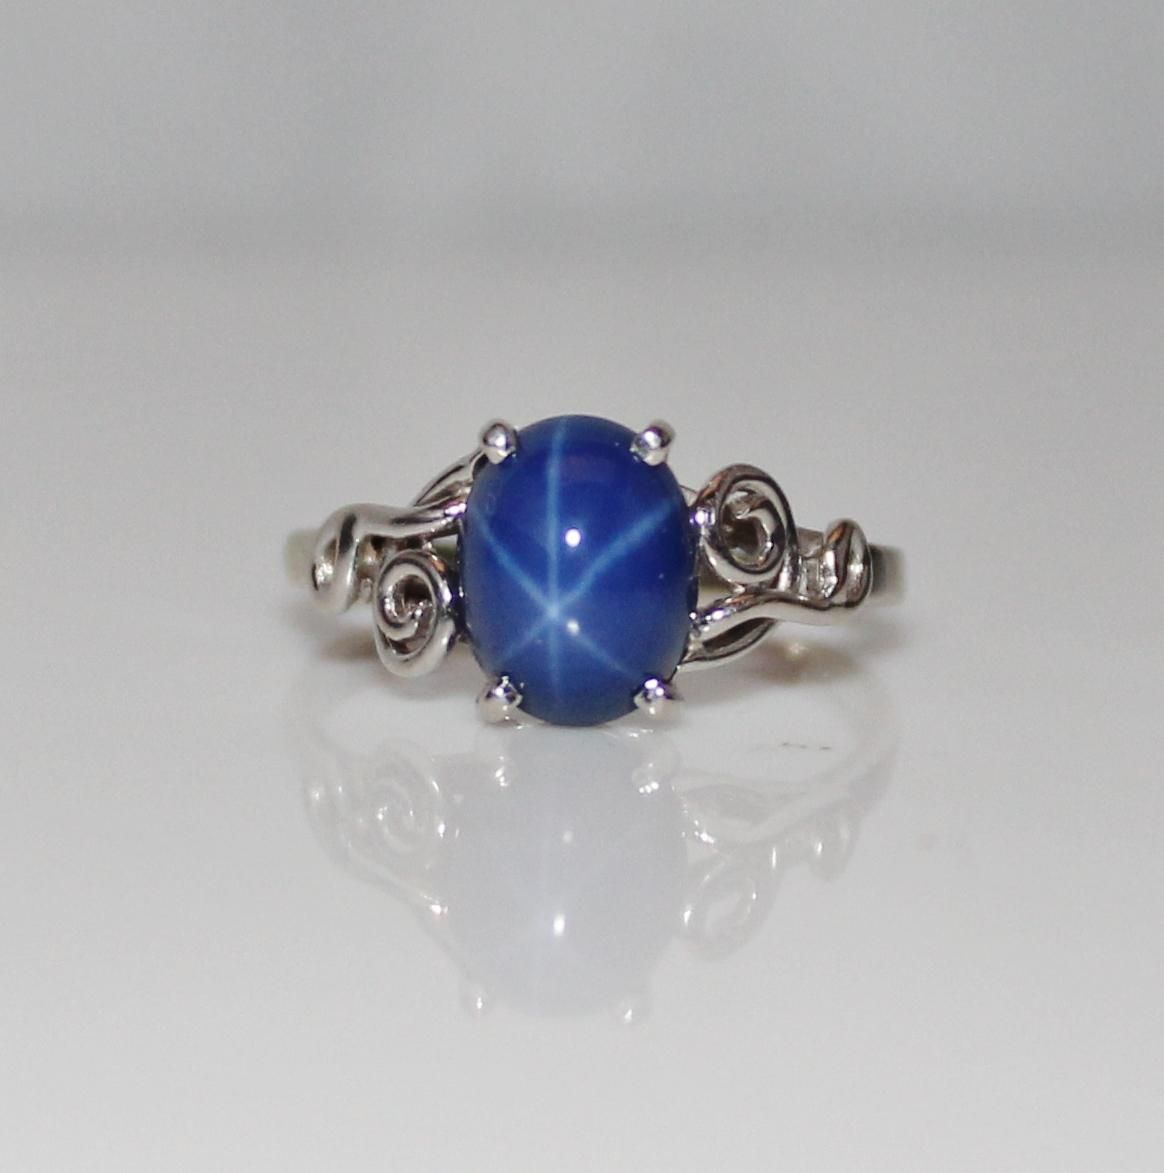 Vintage Estate 14k White Gold Blue Star Sapphire Ring